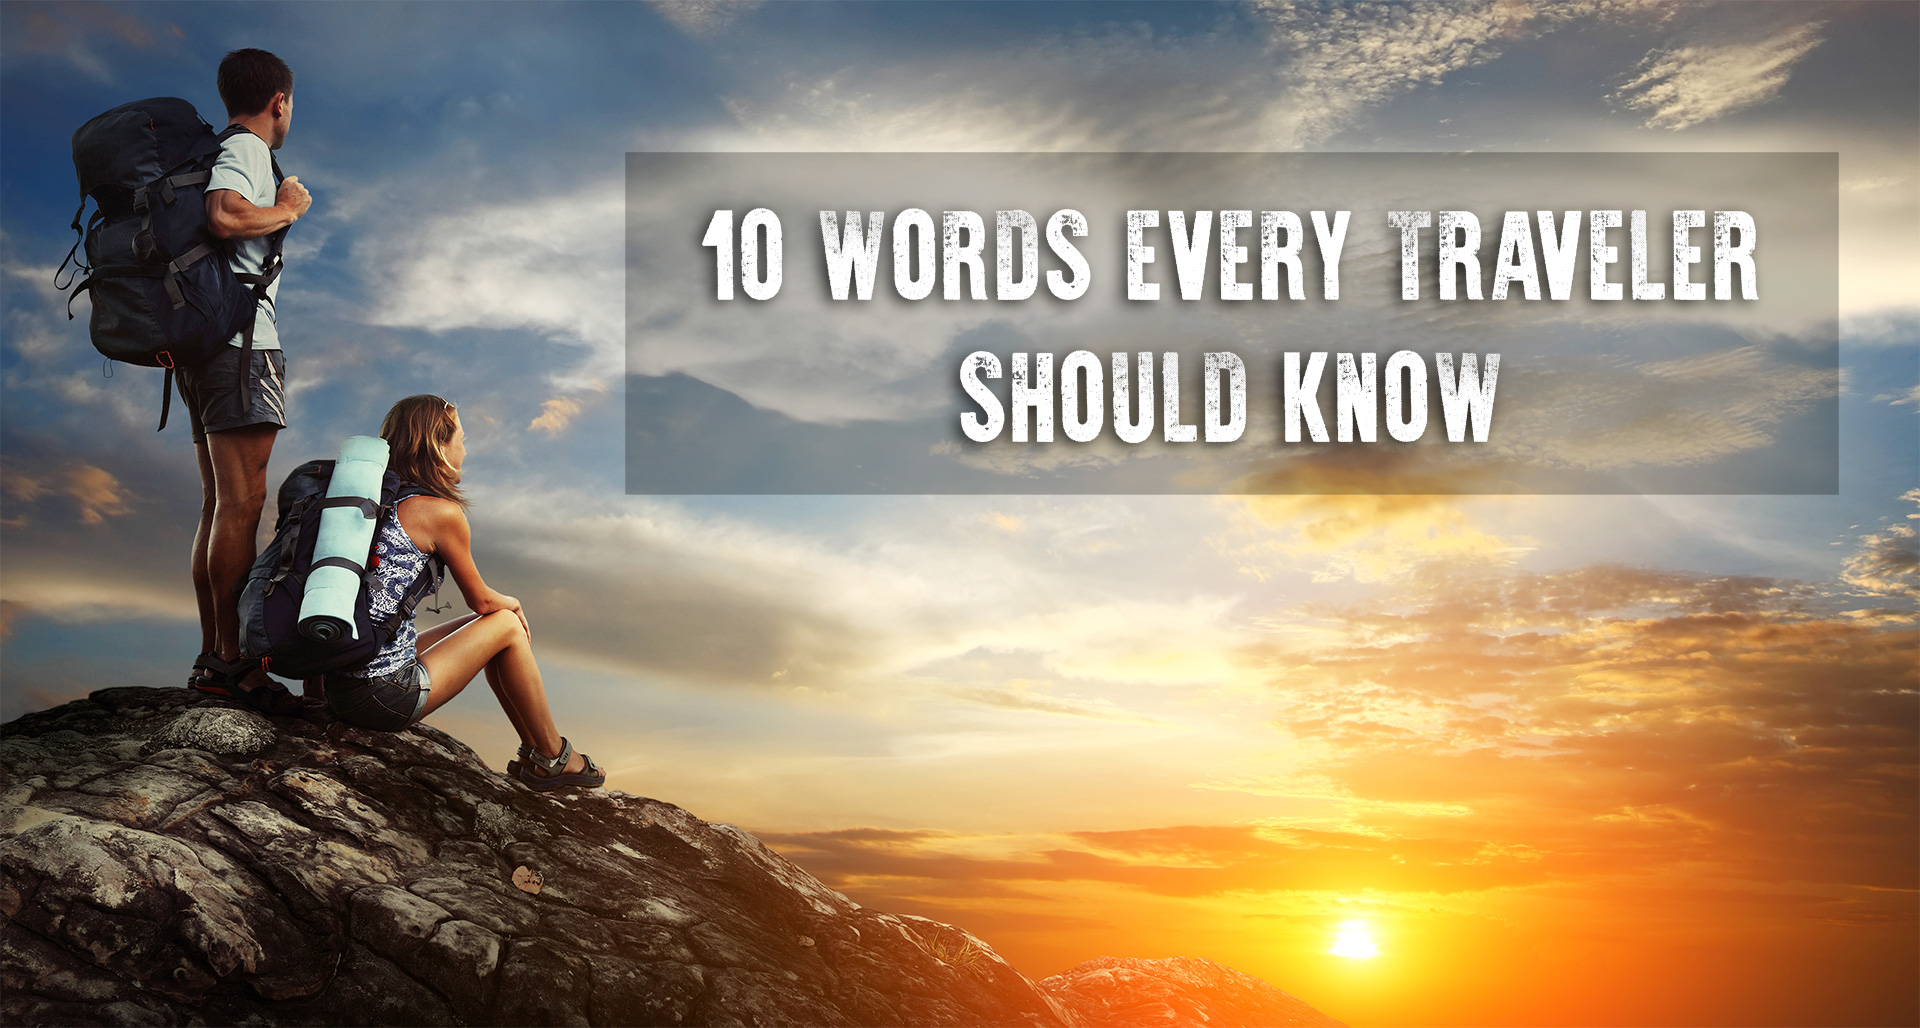 10 Words Every Traveler Should Know | Adventures365.in Blog